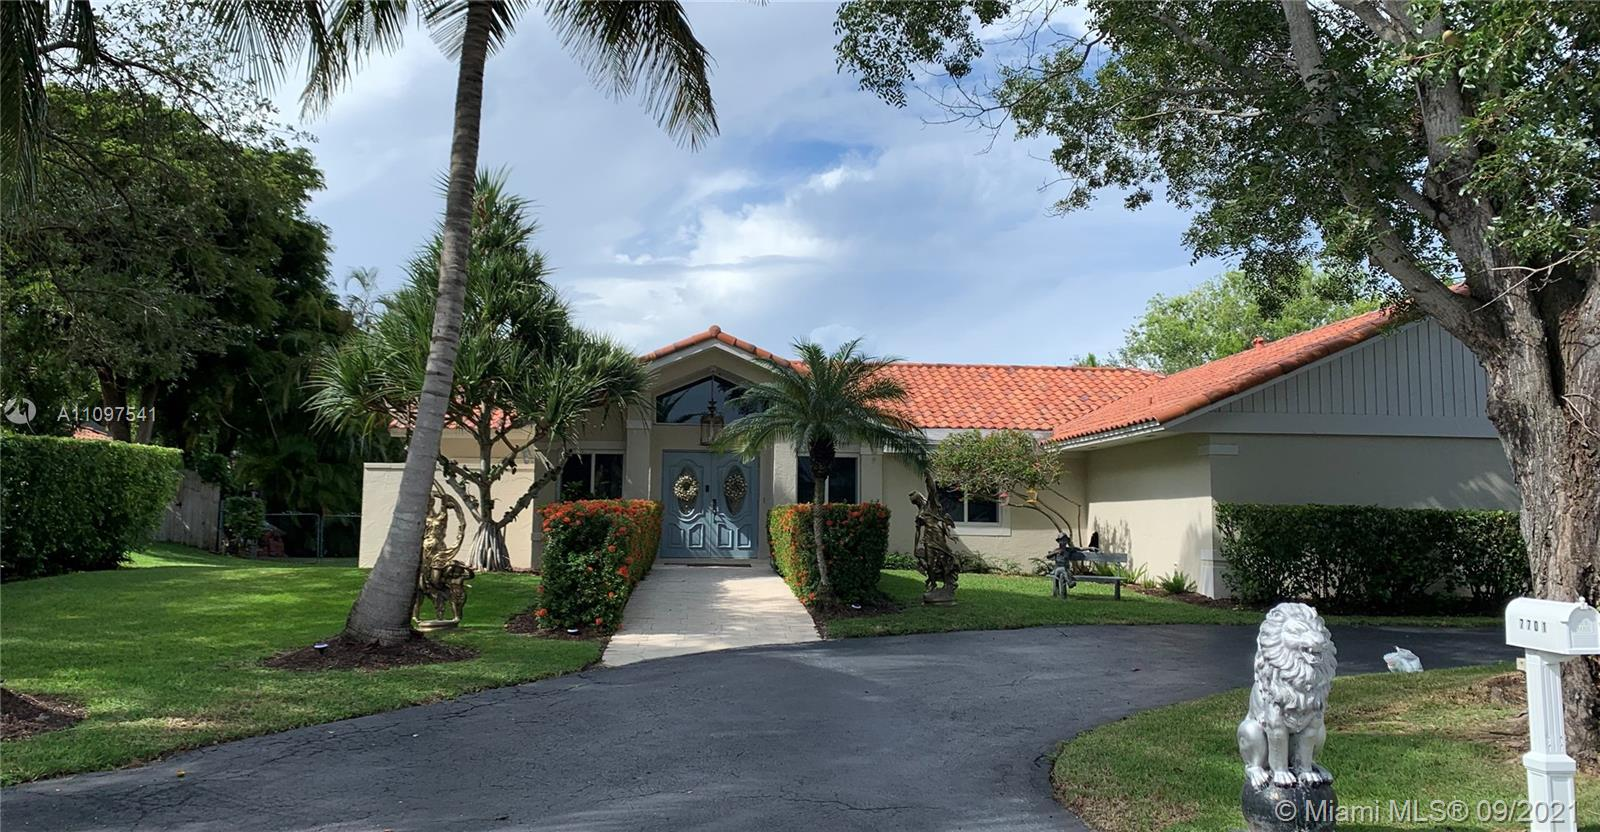 Single Family Home,For Sale,7701 SW 182nd Ter, Palmetto Bay, Florida 33157,Brickell,realty,broker,condos near me